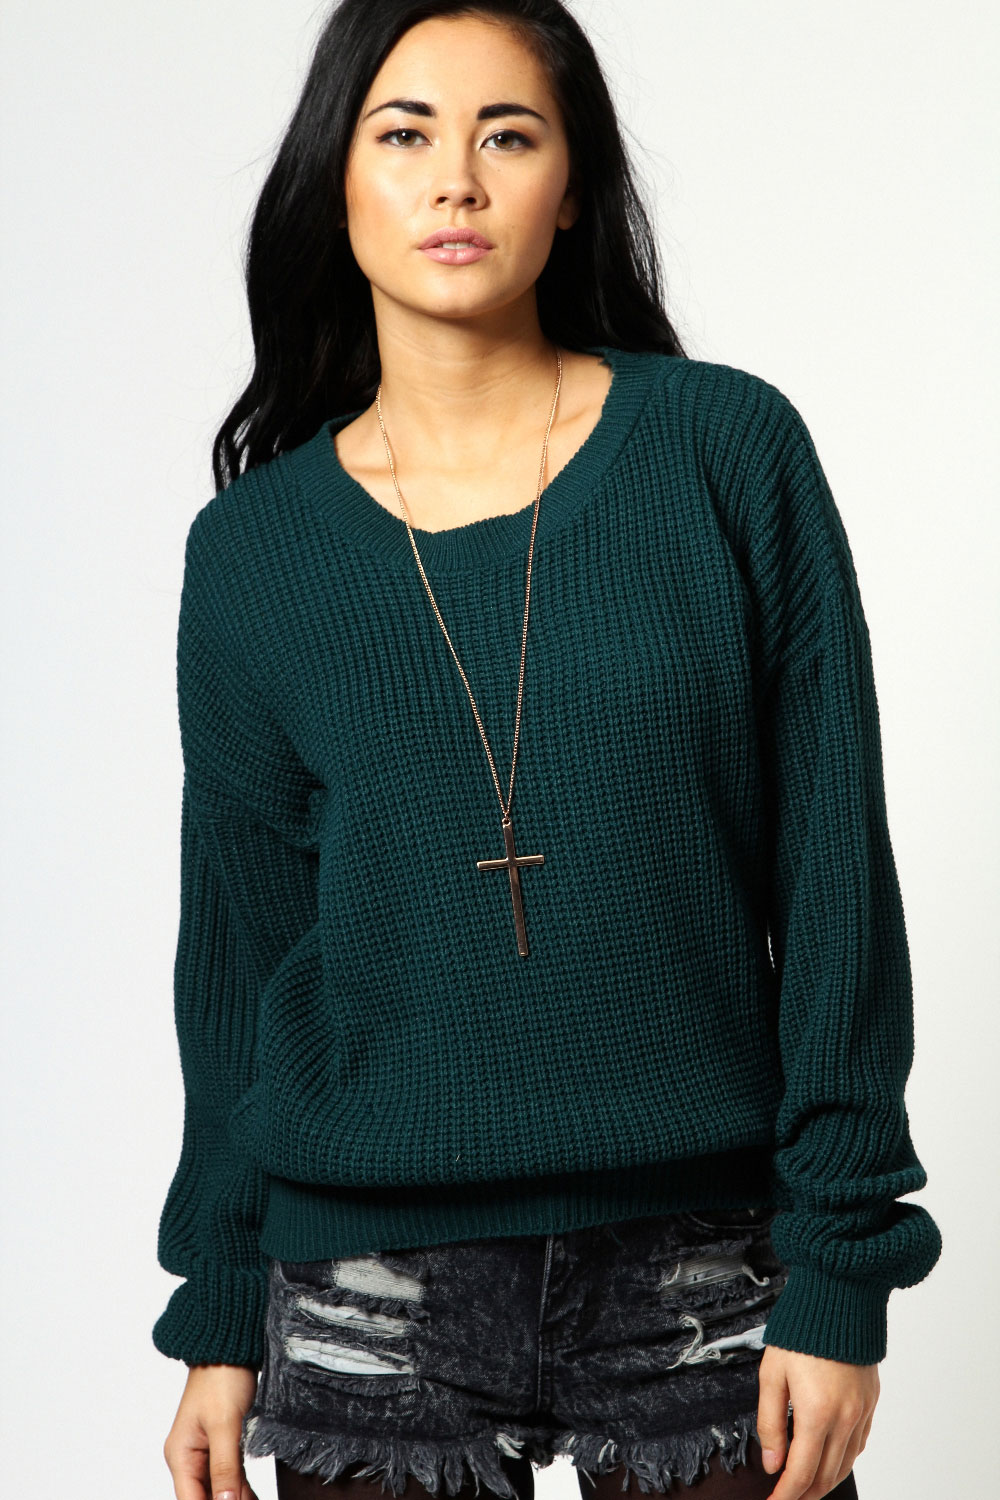 Buy low price, high quality oversized women jumpers with worldwide shipping on litastmaterlo.gq